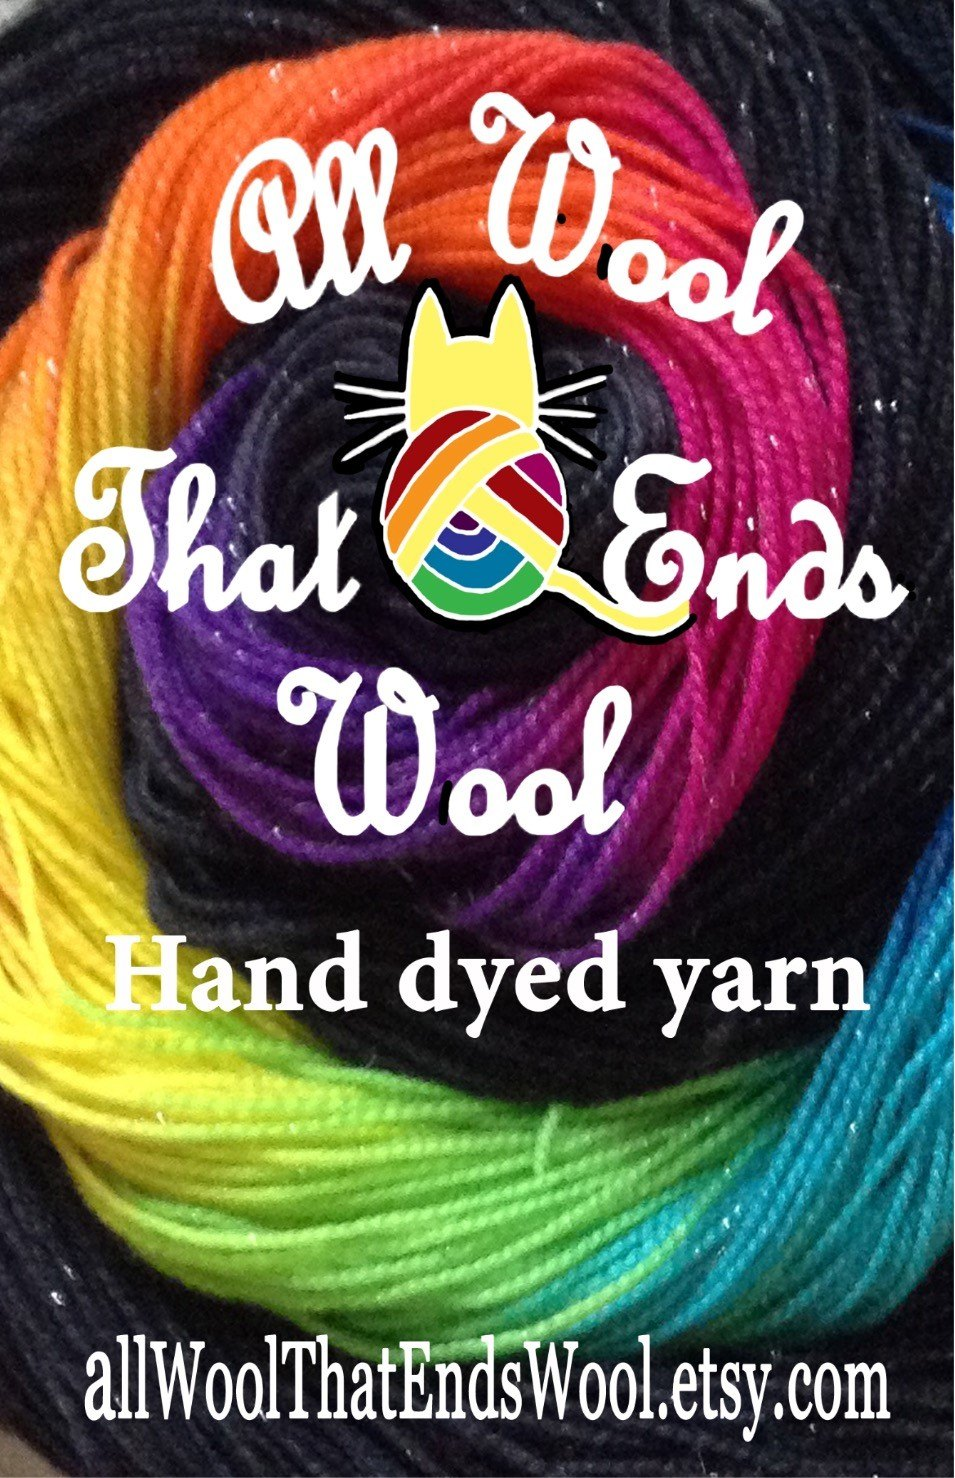 All Wool That Ends Wool Logo